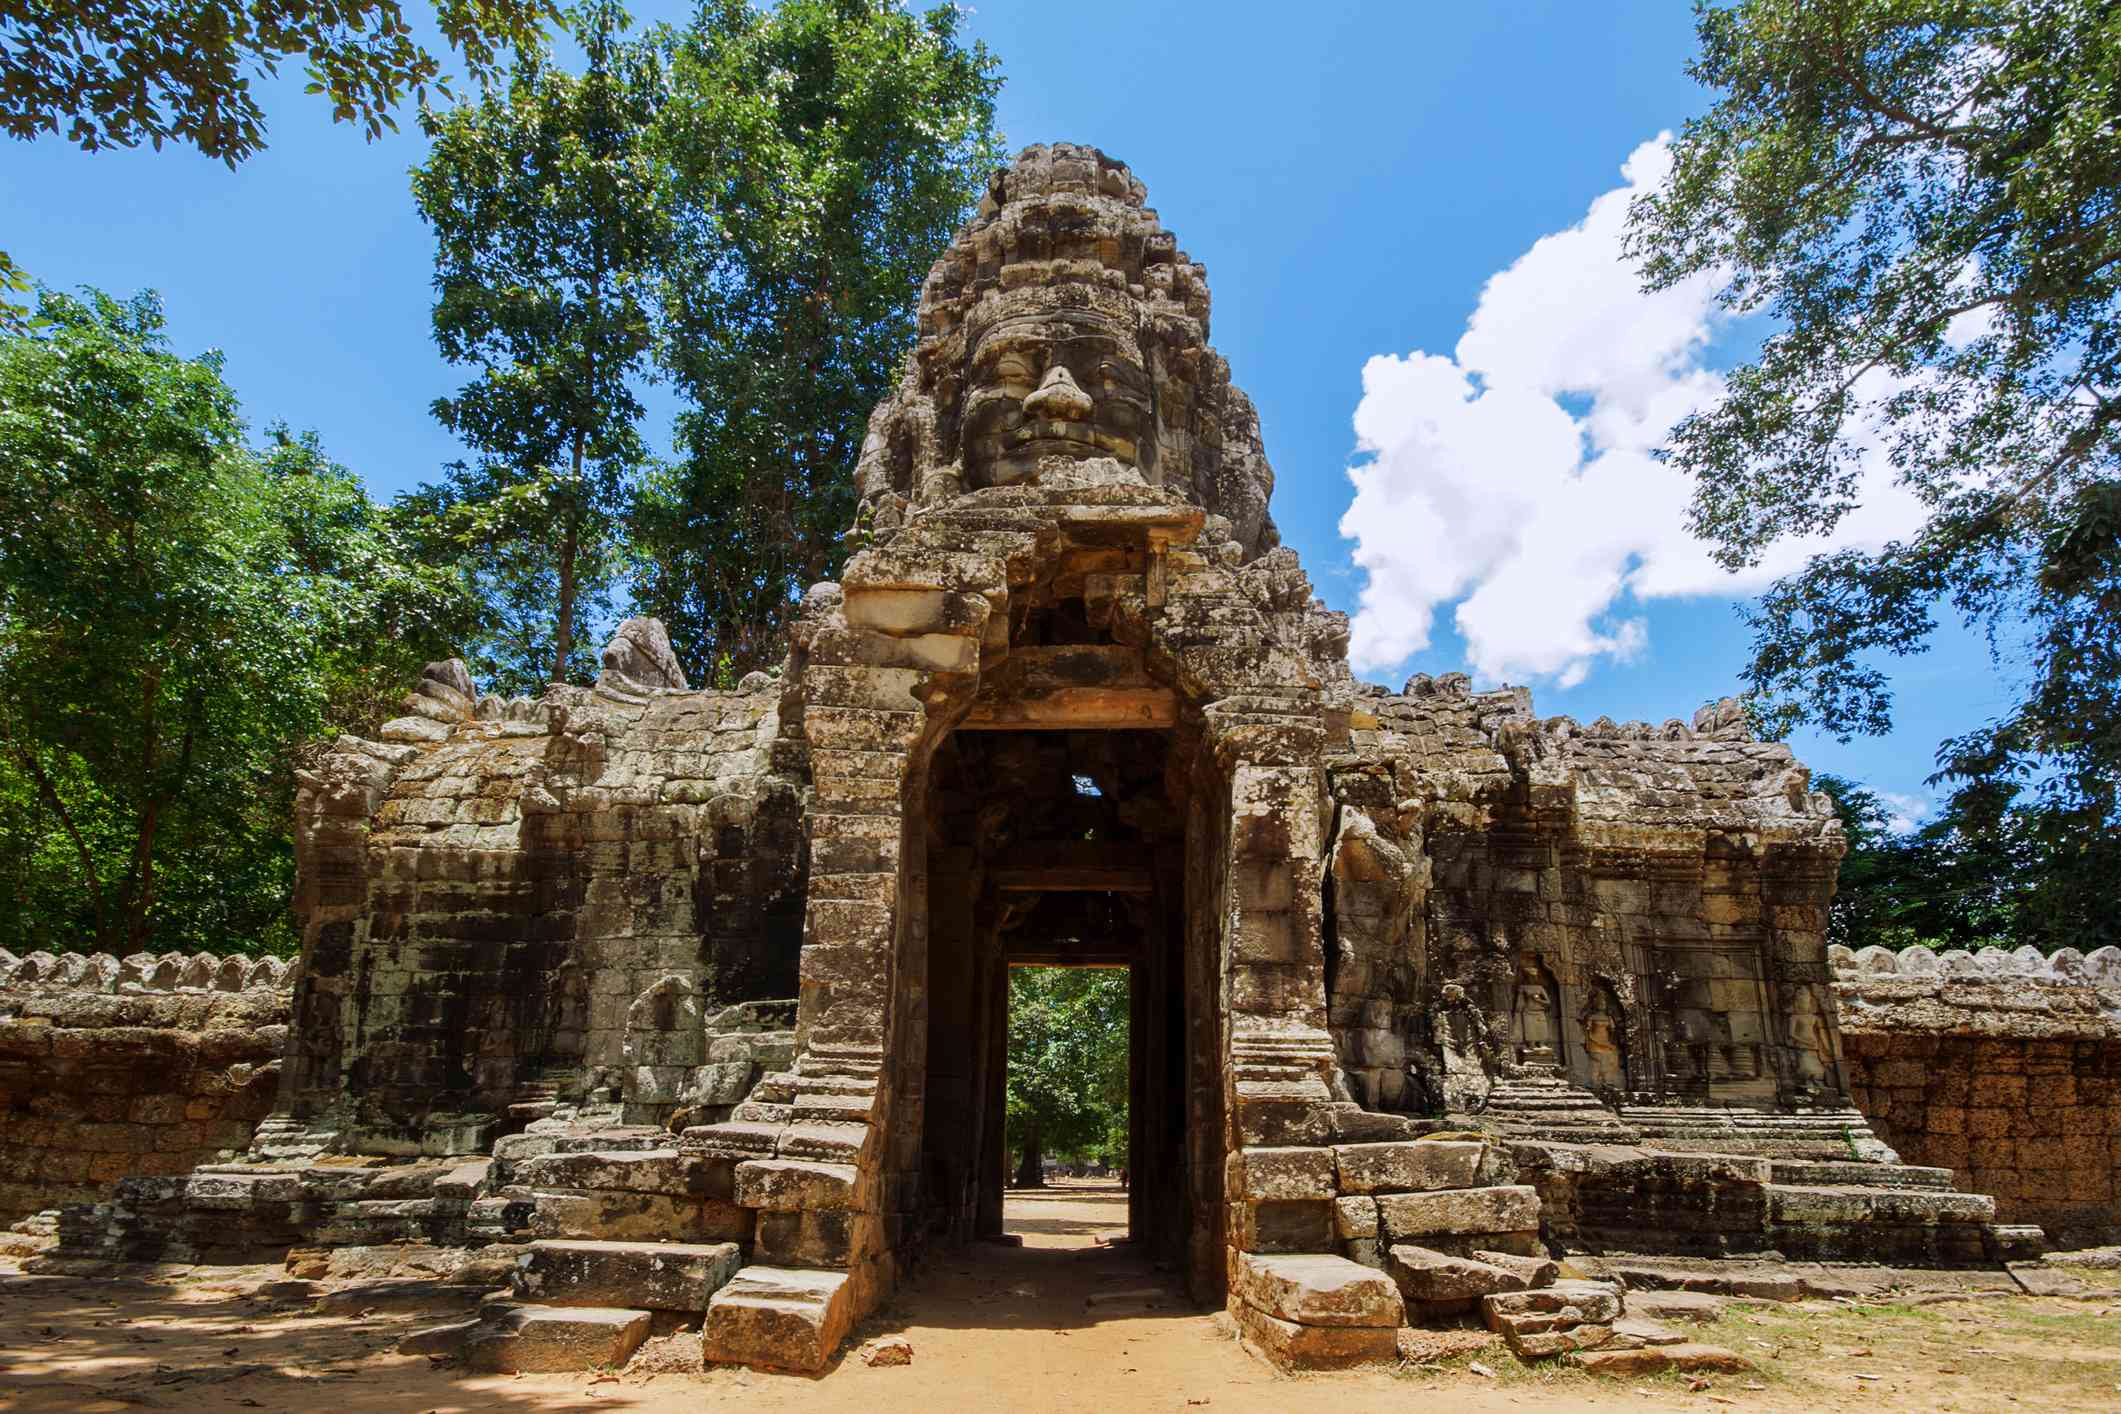 The Entrance Gate of Banteay Kdei